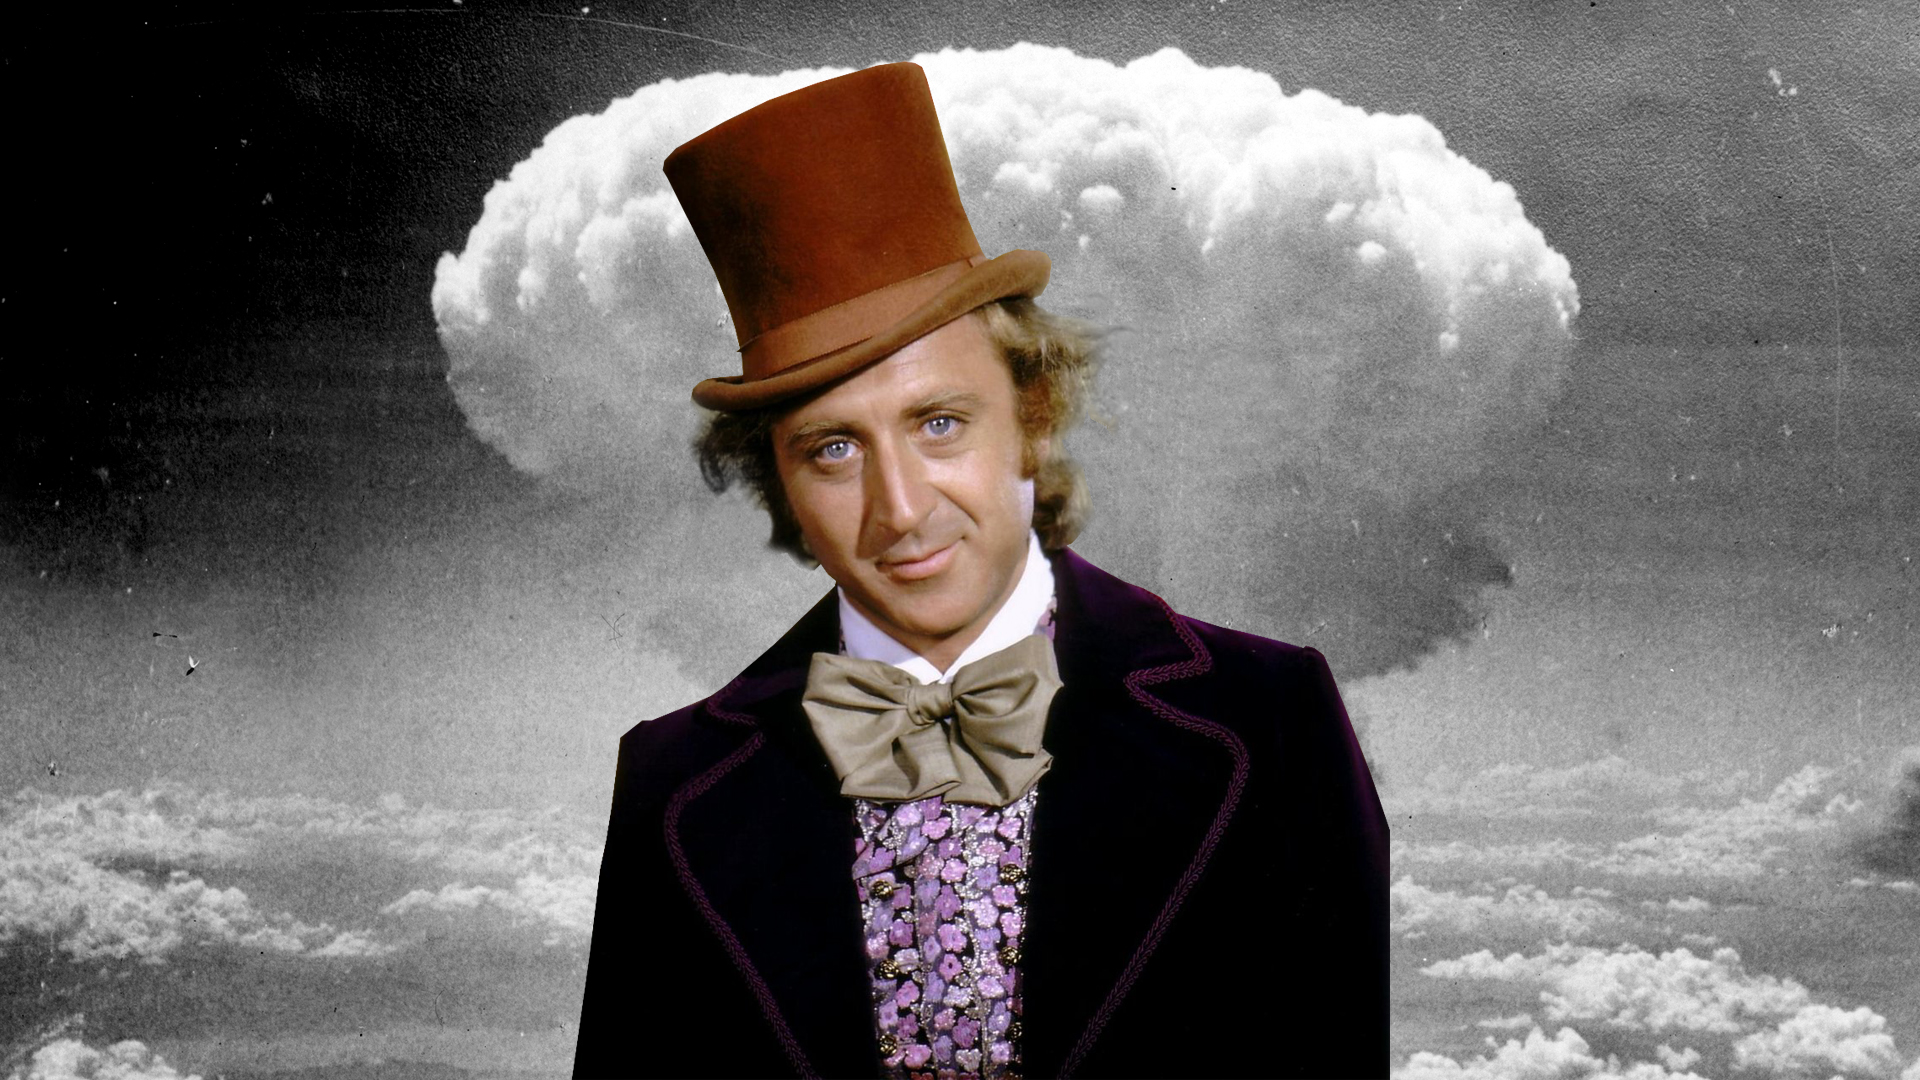 willy wonka the chocolate factory computer wallpapers